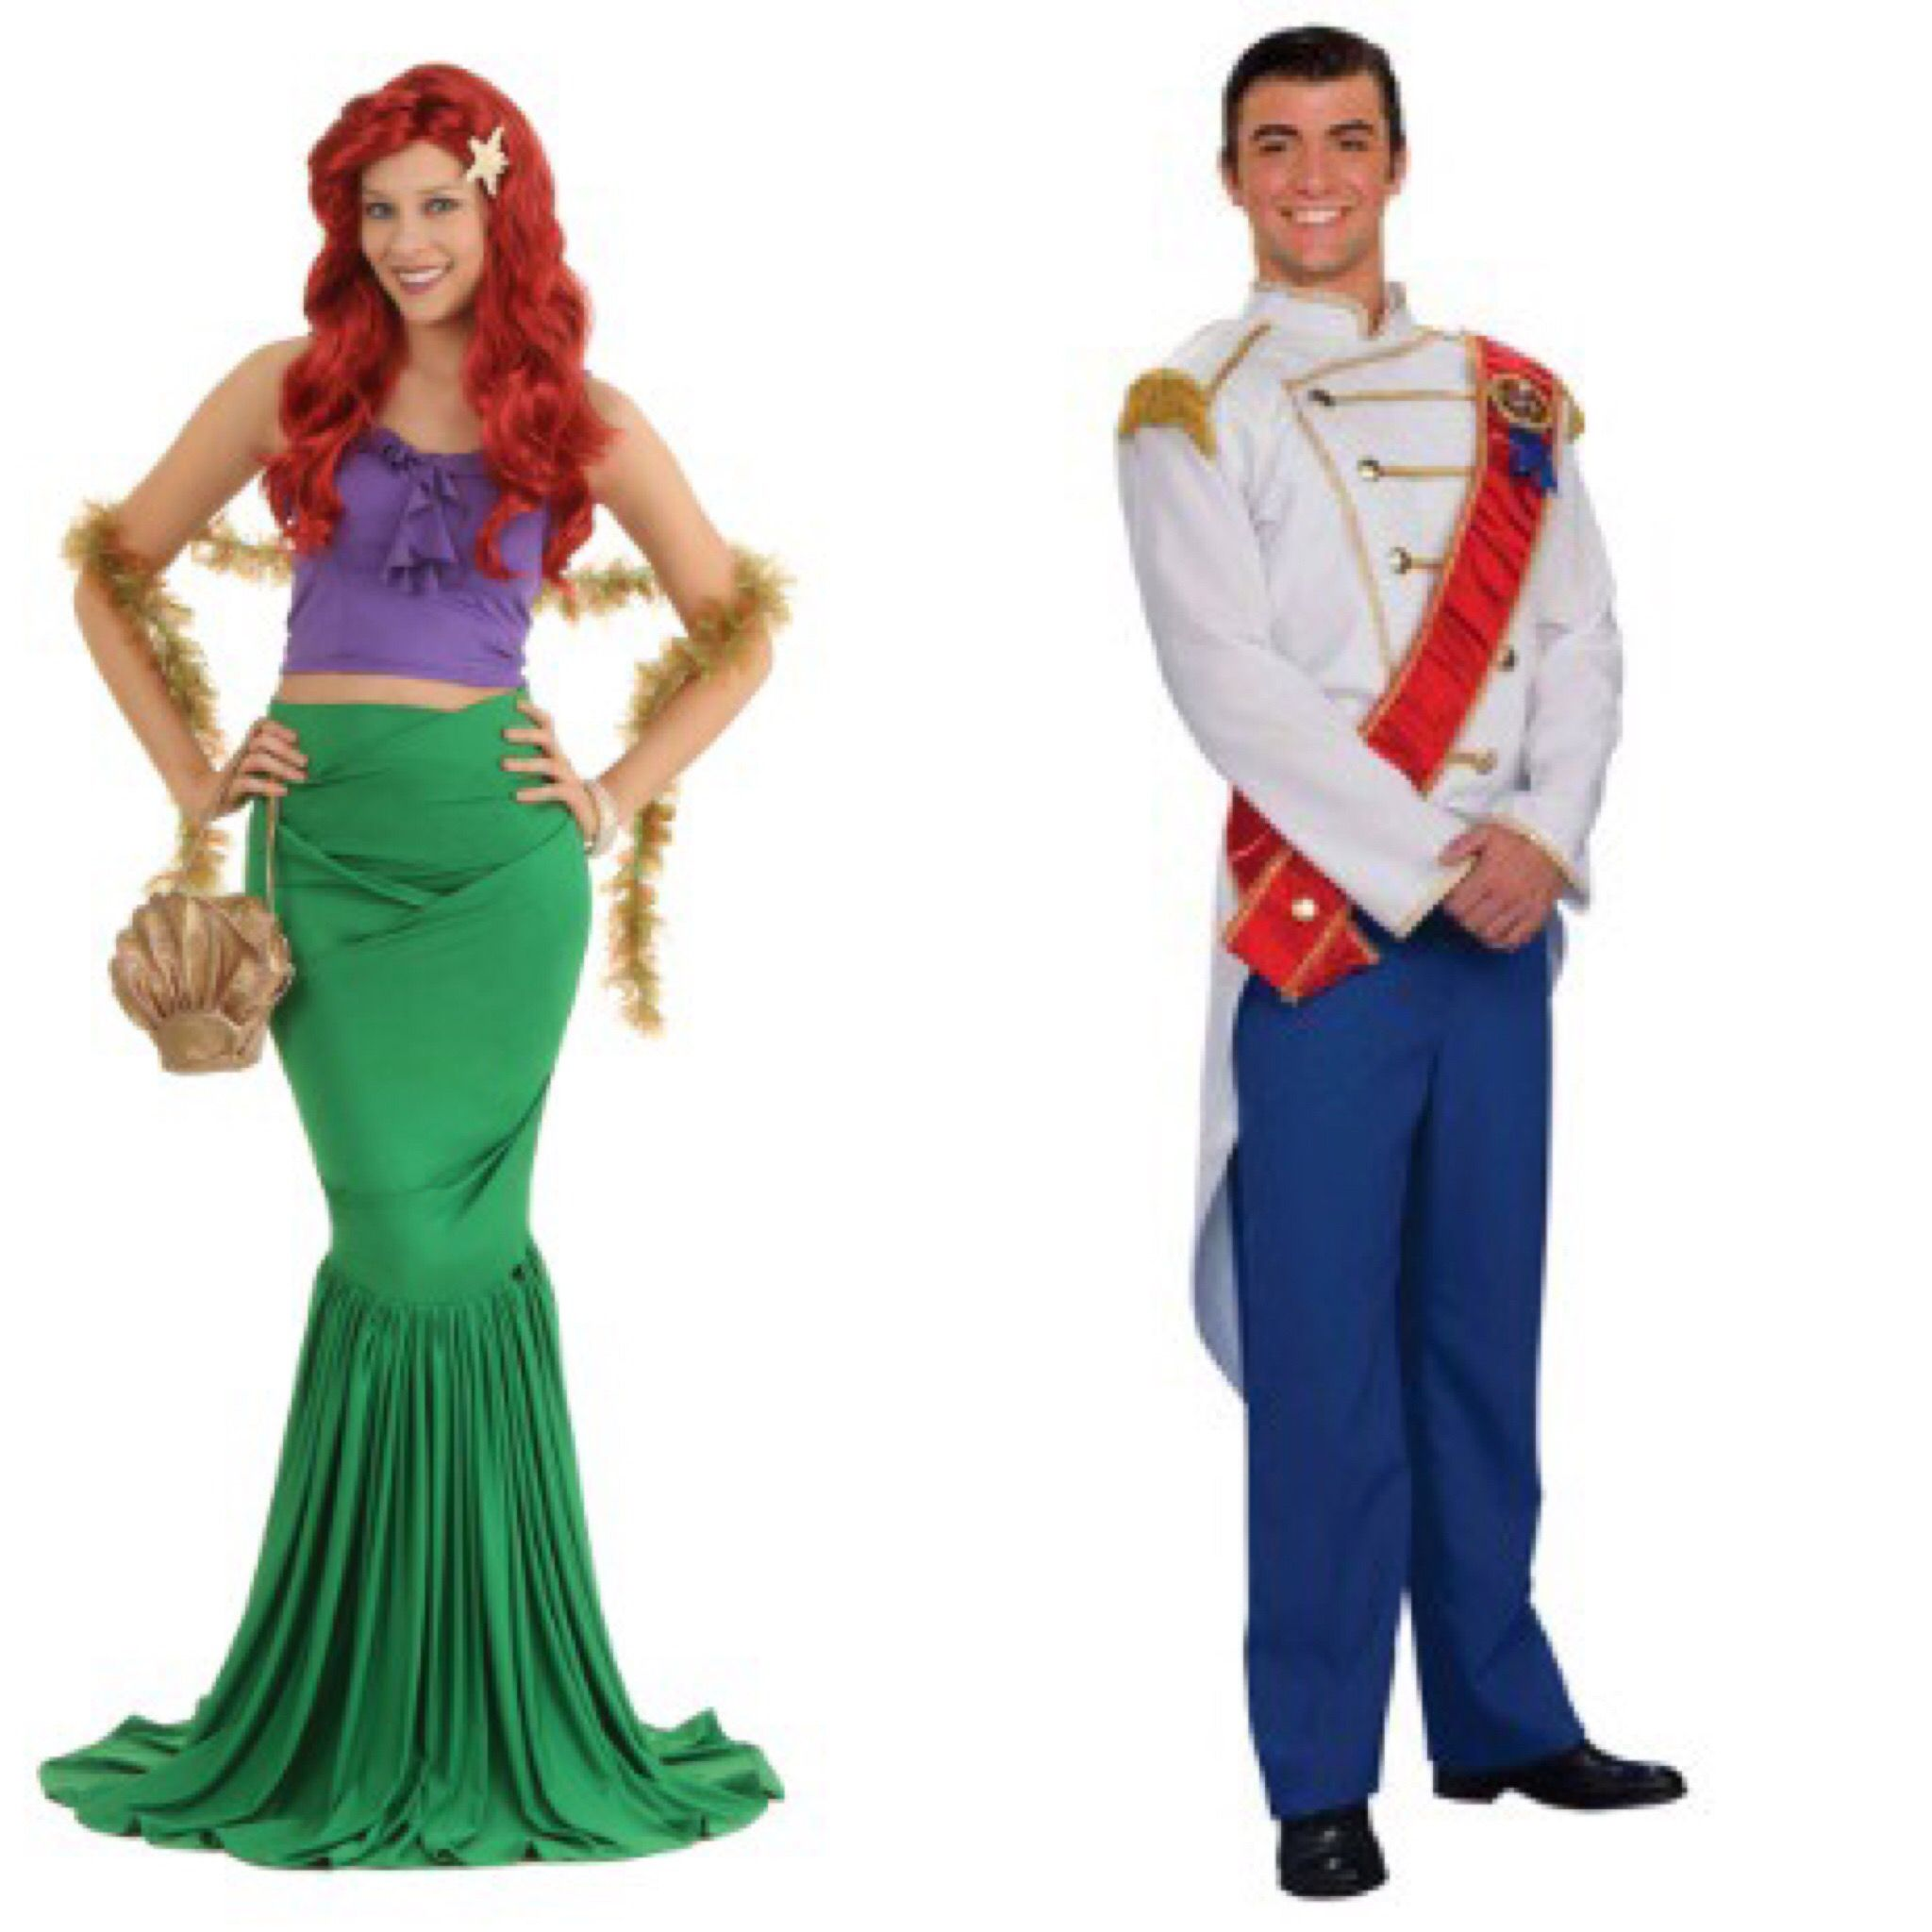 Formal prince eric costume mens prince par correenscdesigns ariel and prince eric costumes solutioingenieria Images